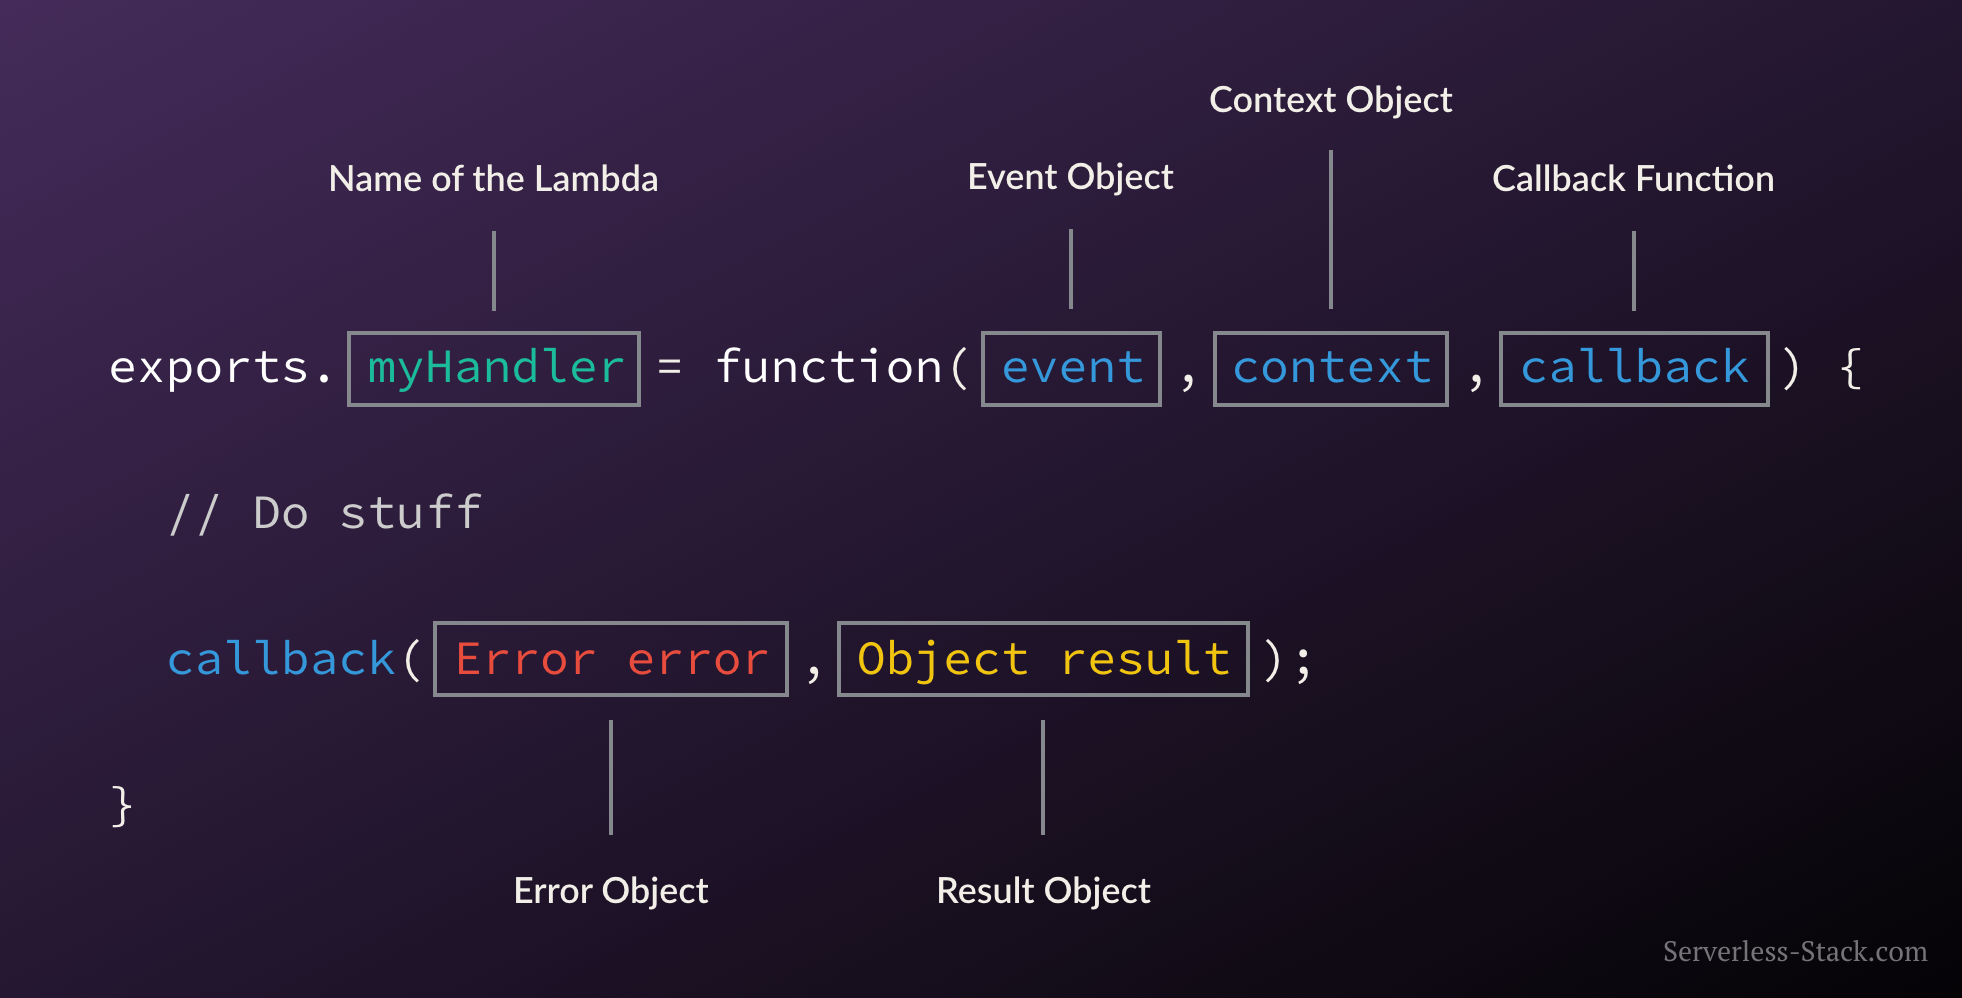 anatomy-of-a-lambda-function.png